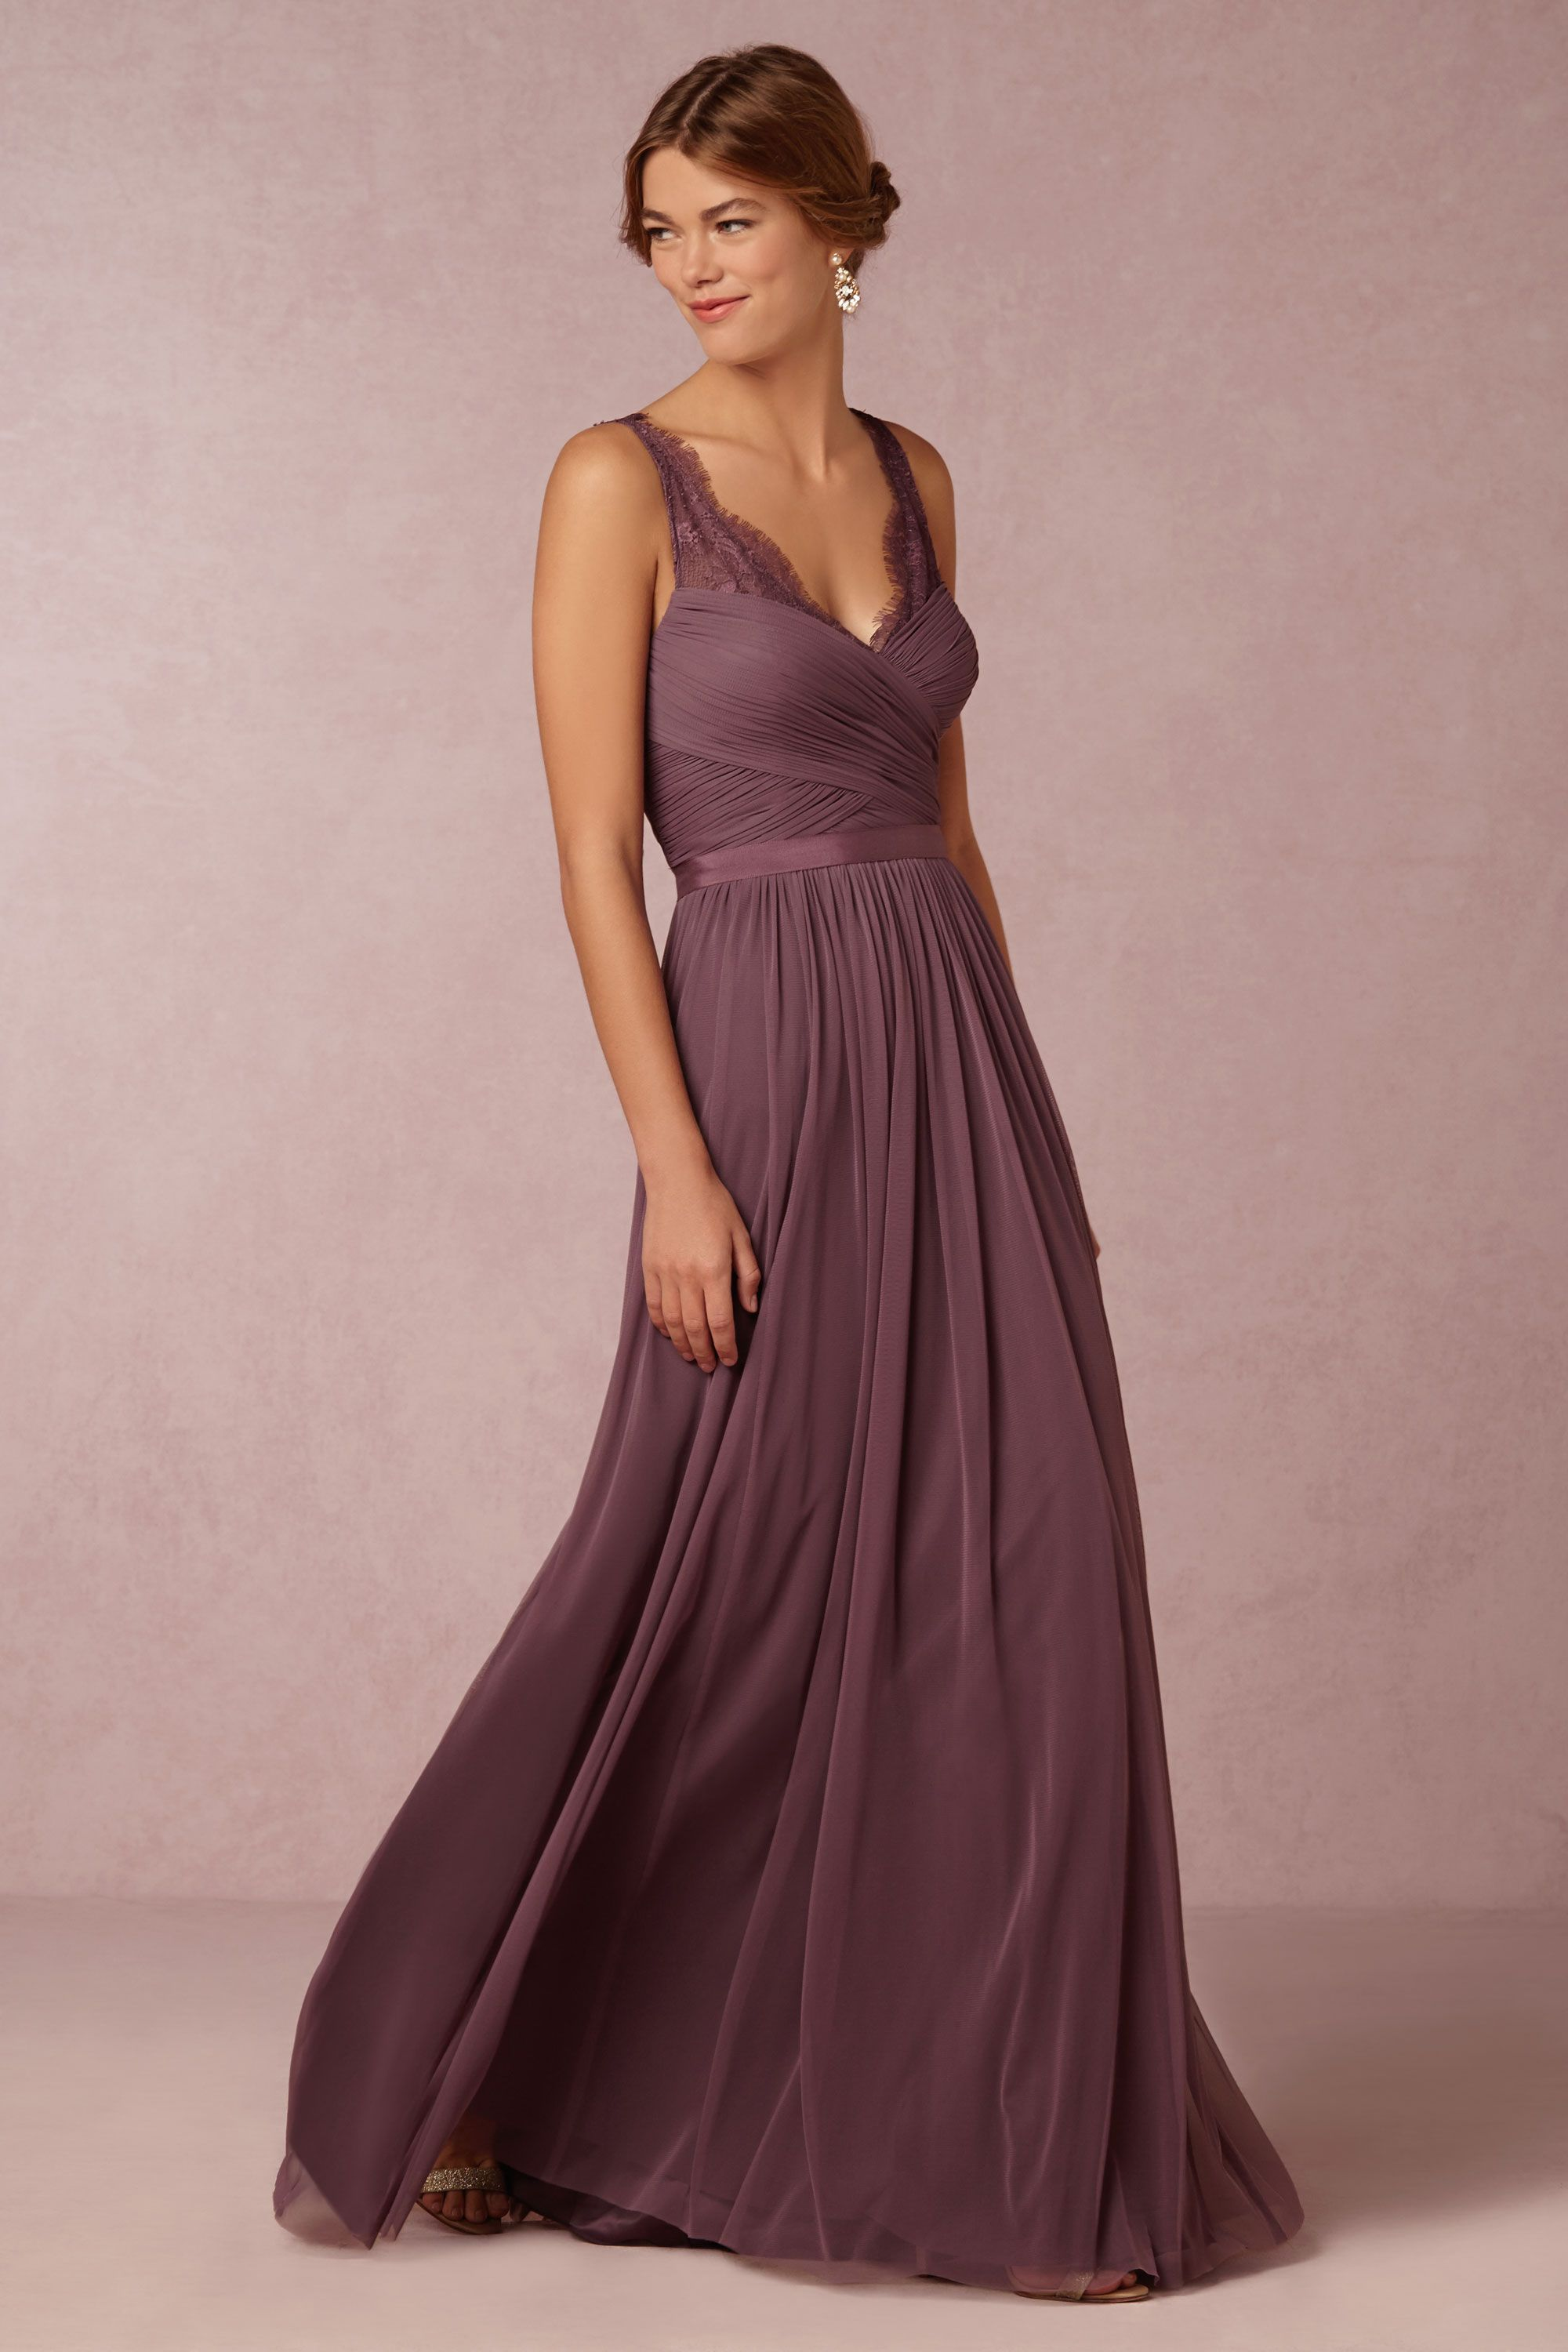 BHLDN\'s Hitherto Fleur Dress in Antique Orchid | Wedding, Weddings ...